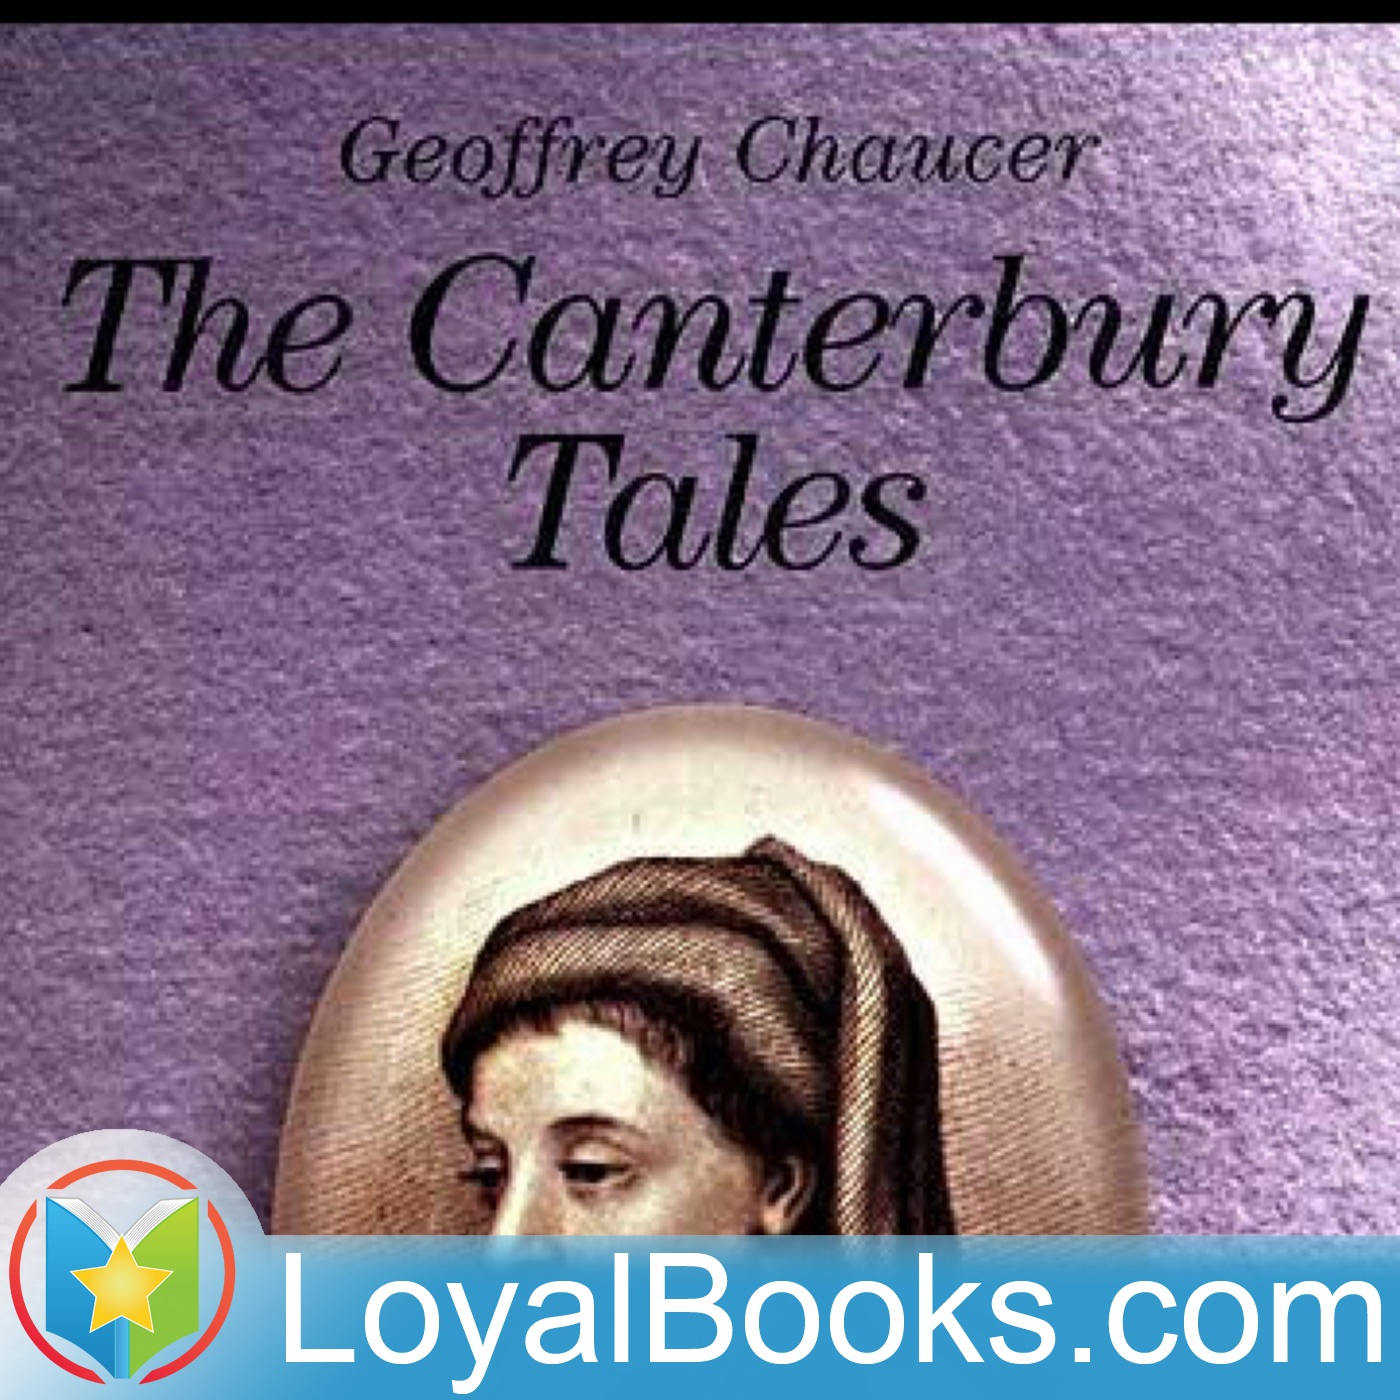 <![CDATA[The Canterbury Tales by Geoffrey Chaucer]]>